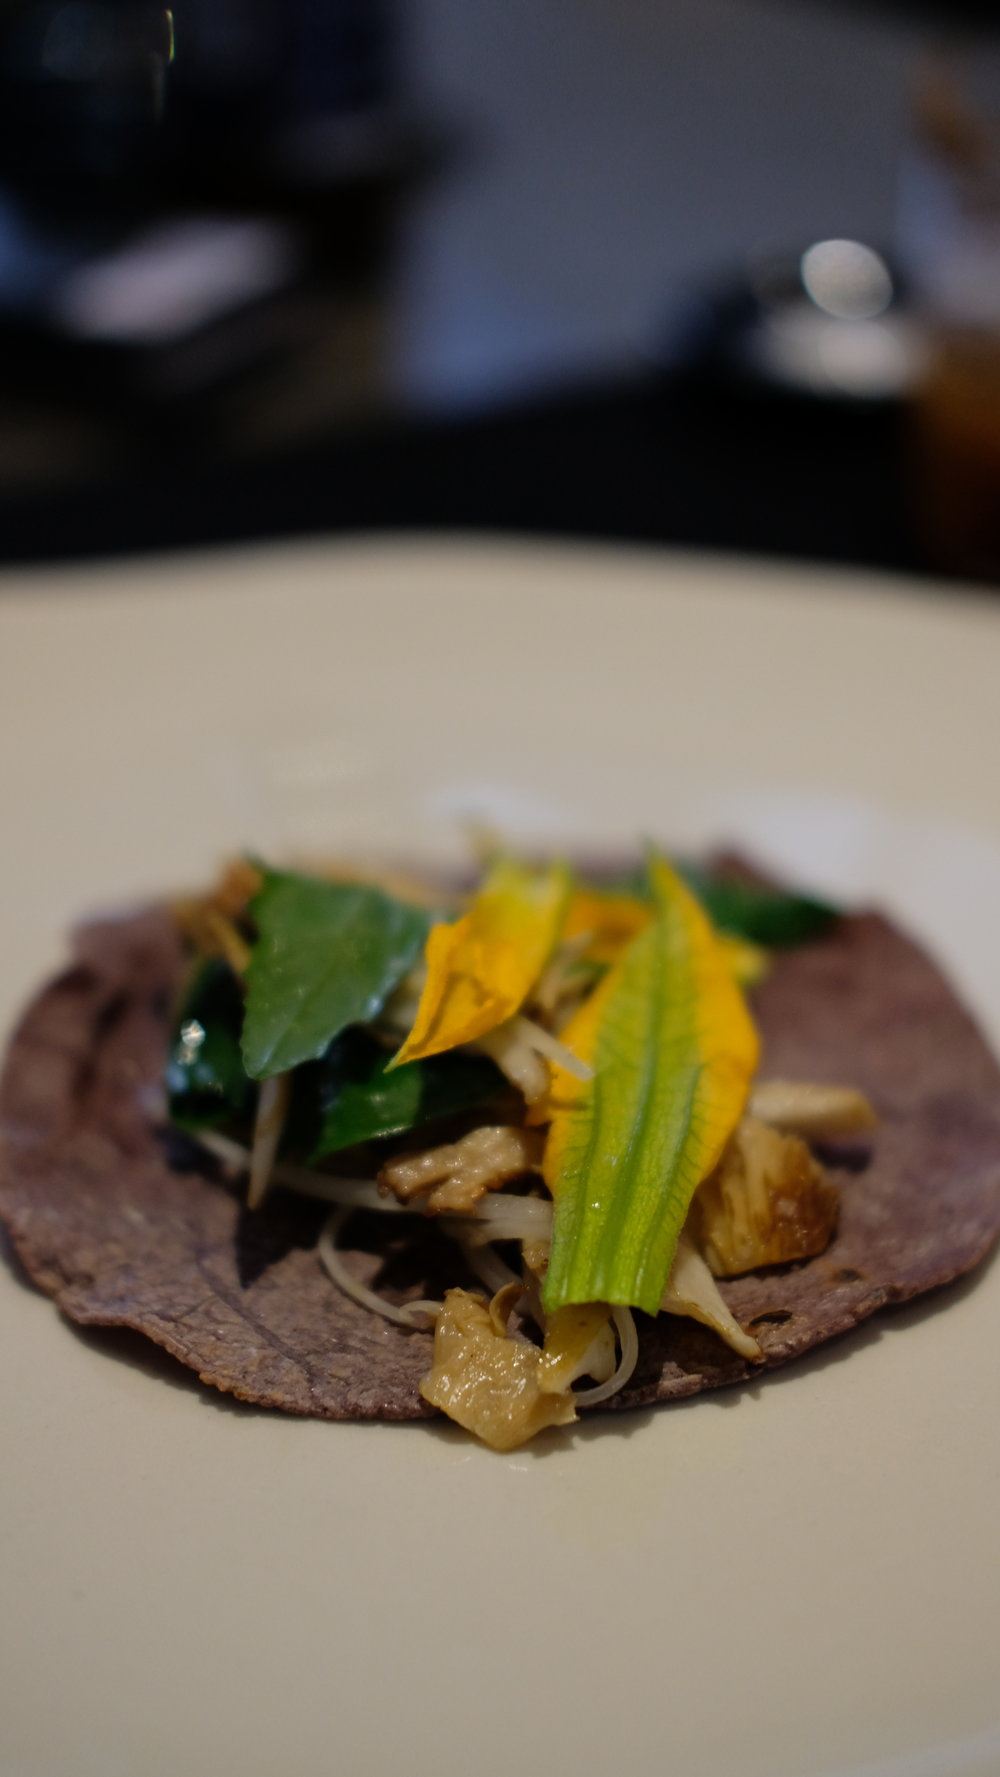 Mushroom with edible herbs on a red corn tortilla